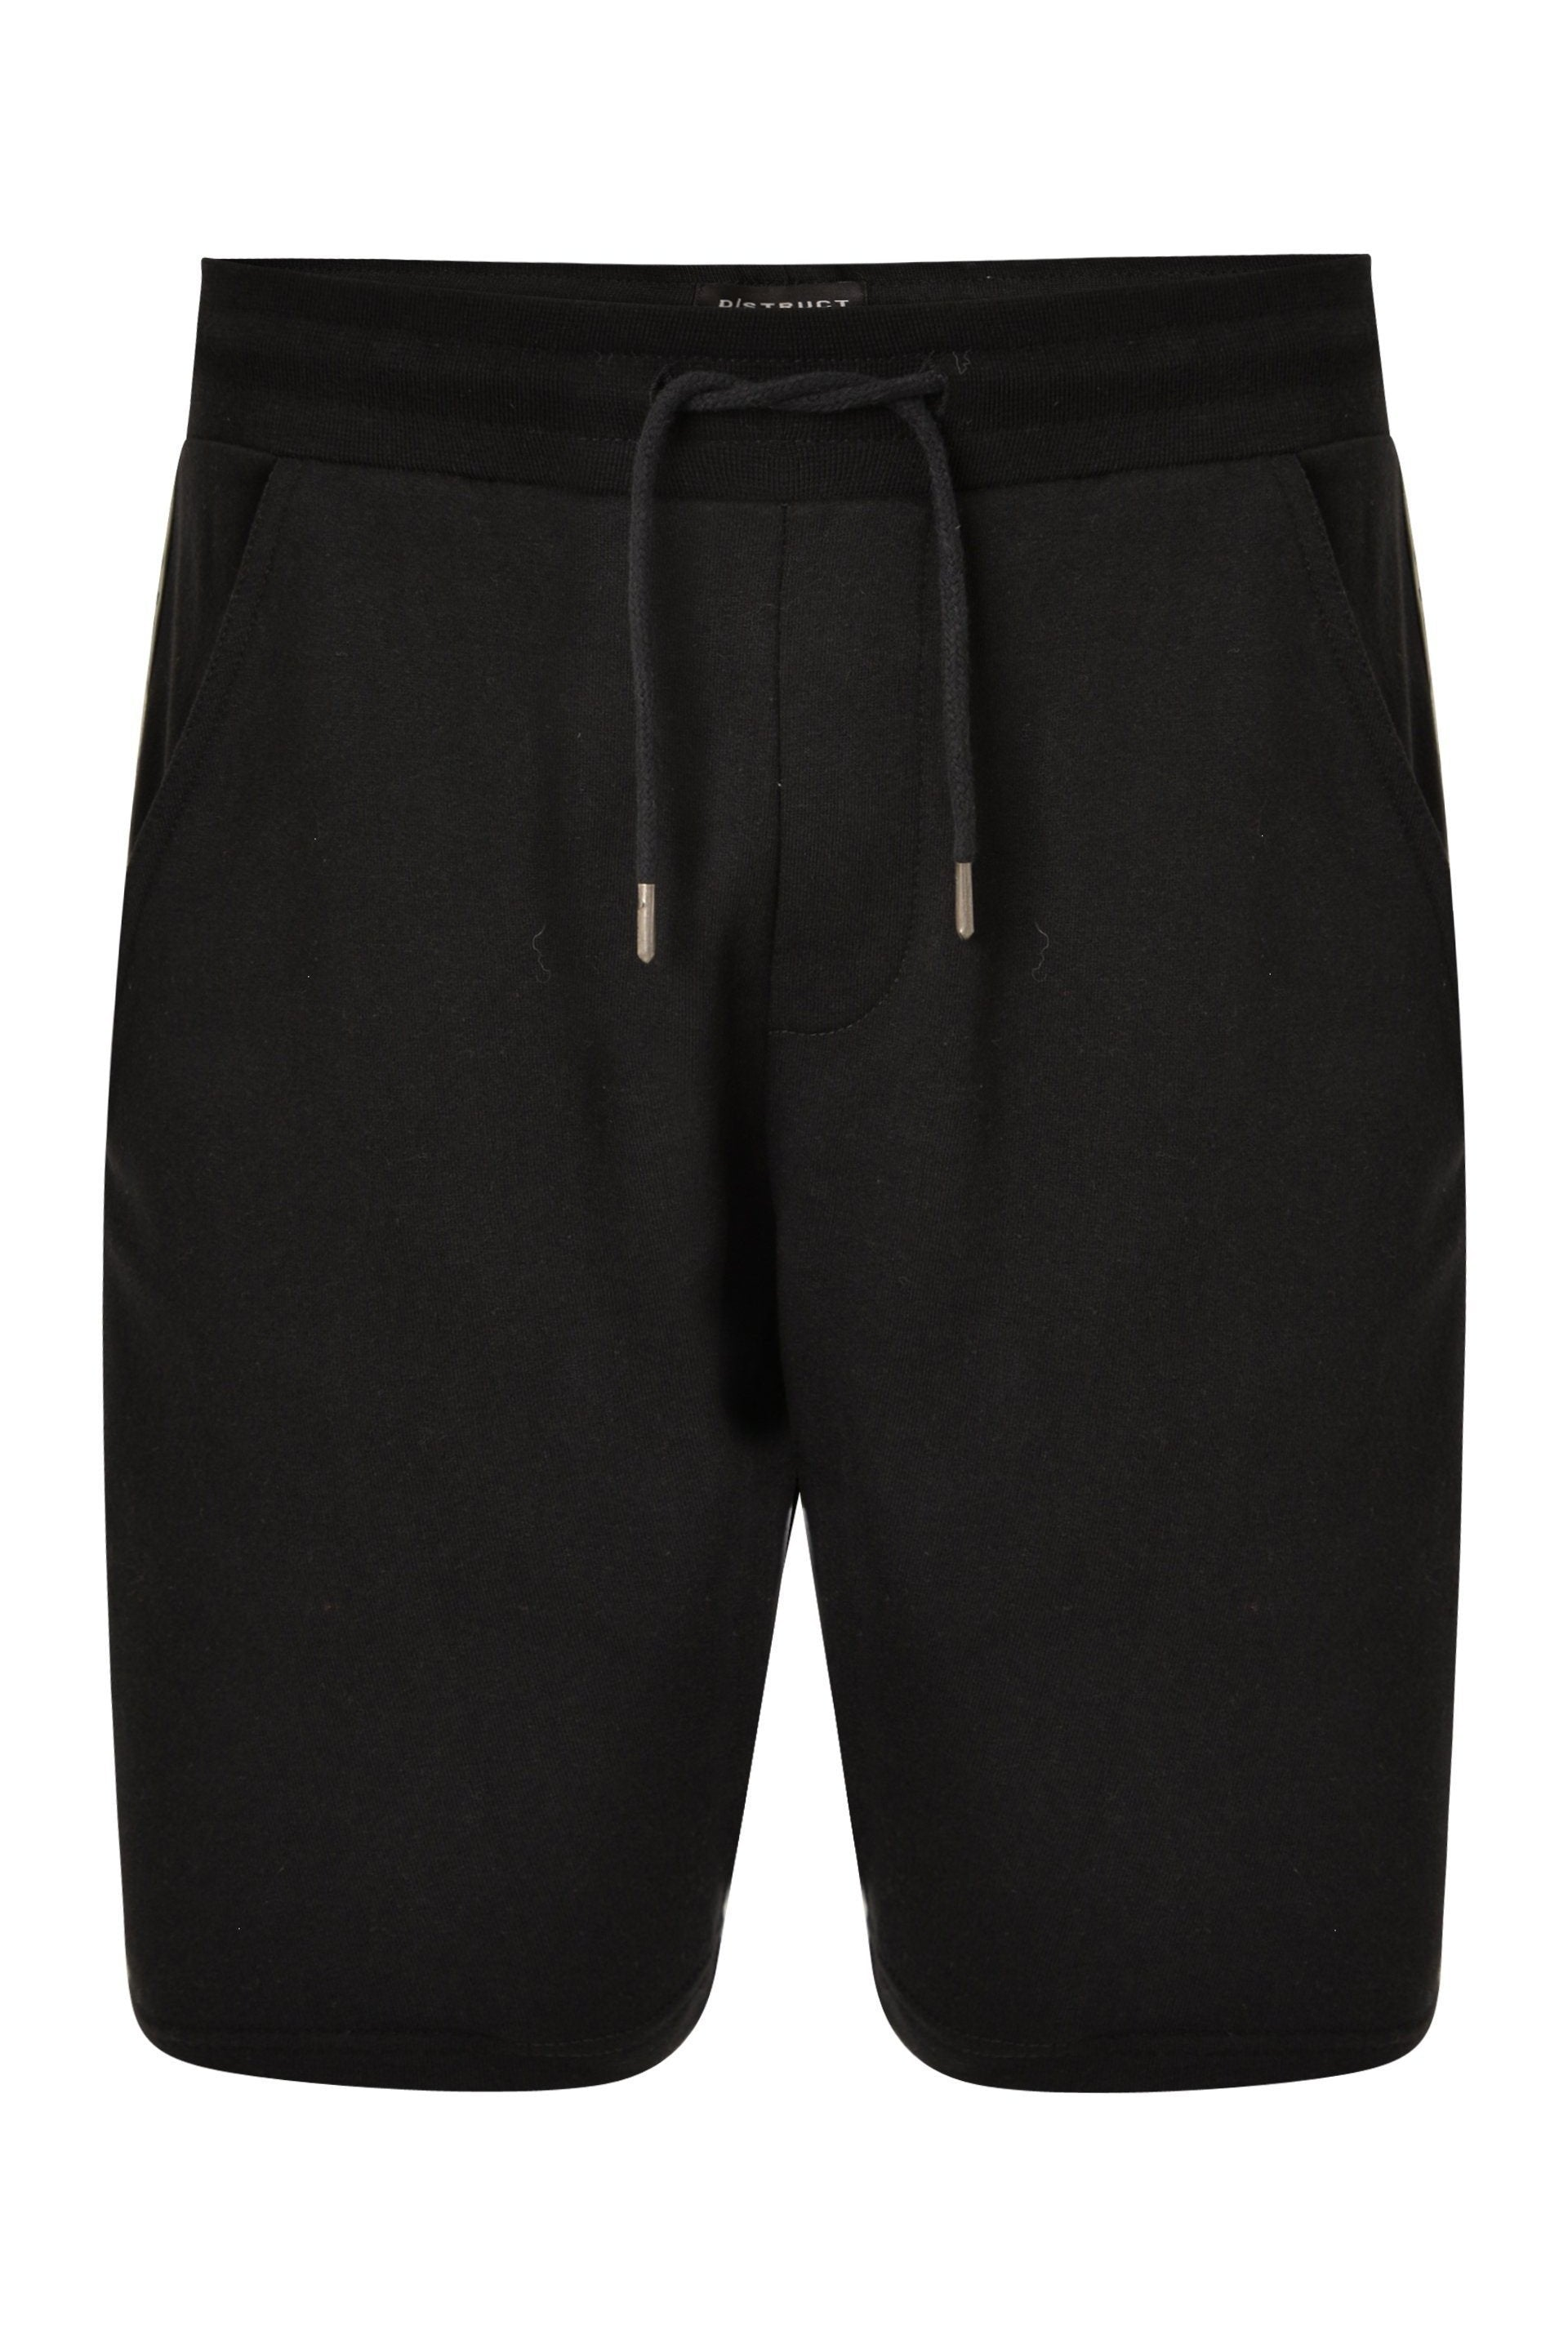 Reflect Shorts Black